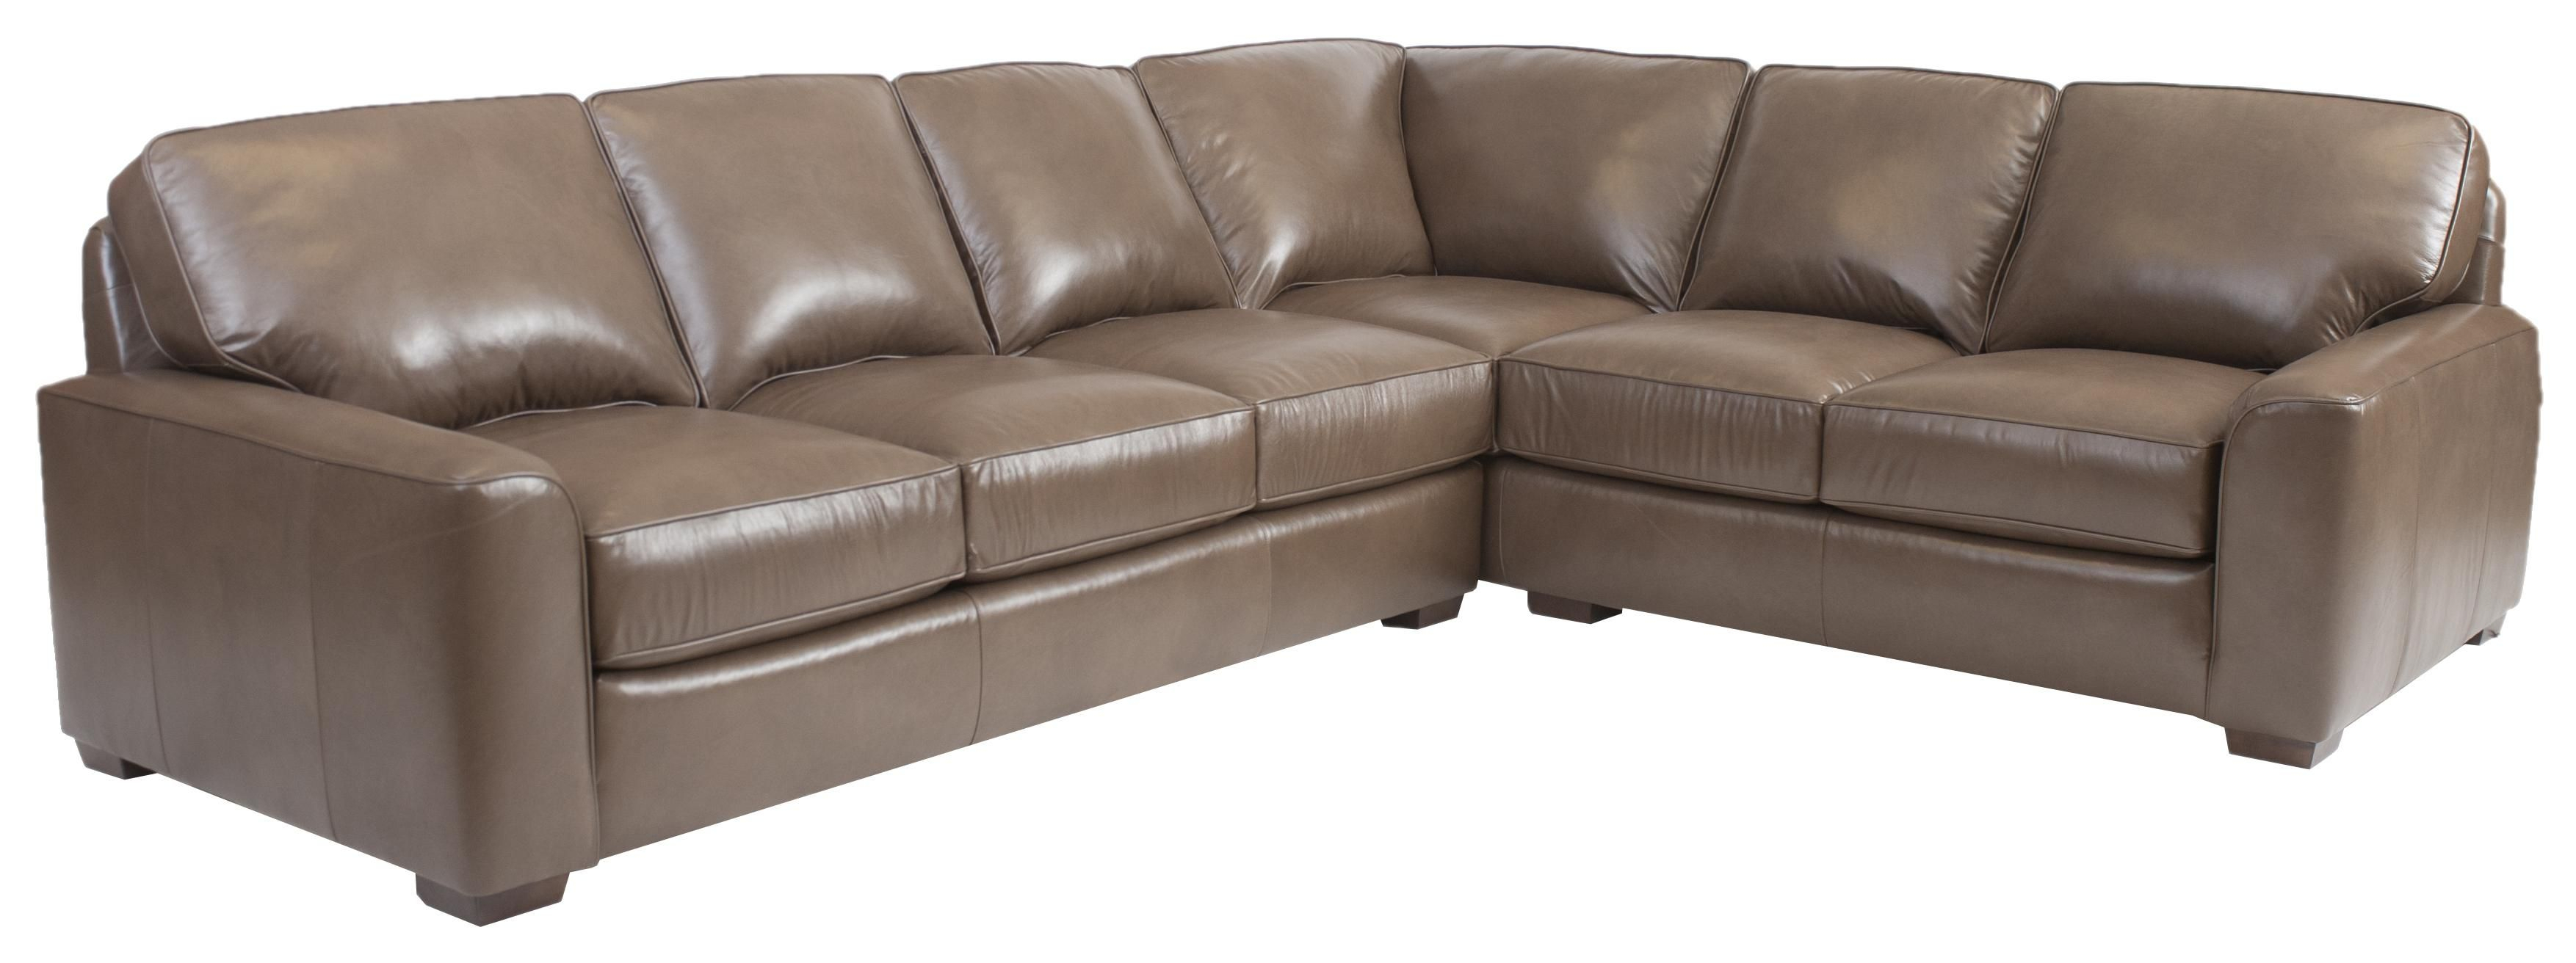 Build Your Own (8000 Series) Large Corner Sectional Sofasmith Within Amala White Leather Reclining Swivel Chairs (View 25 of 25)